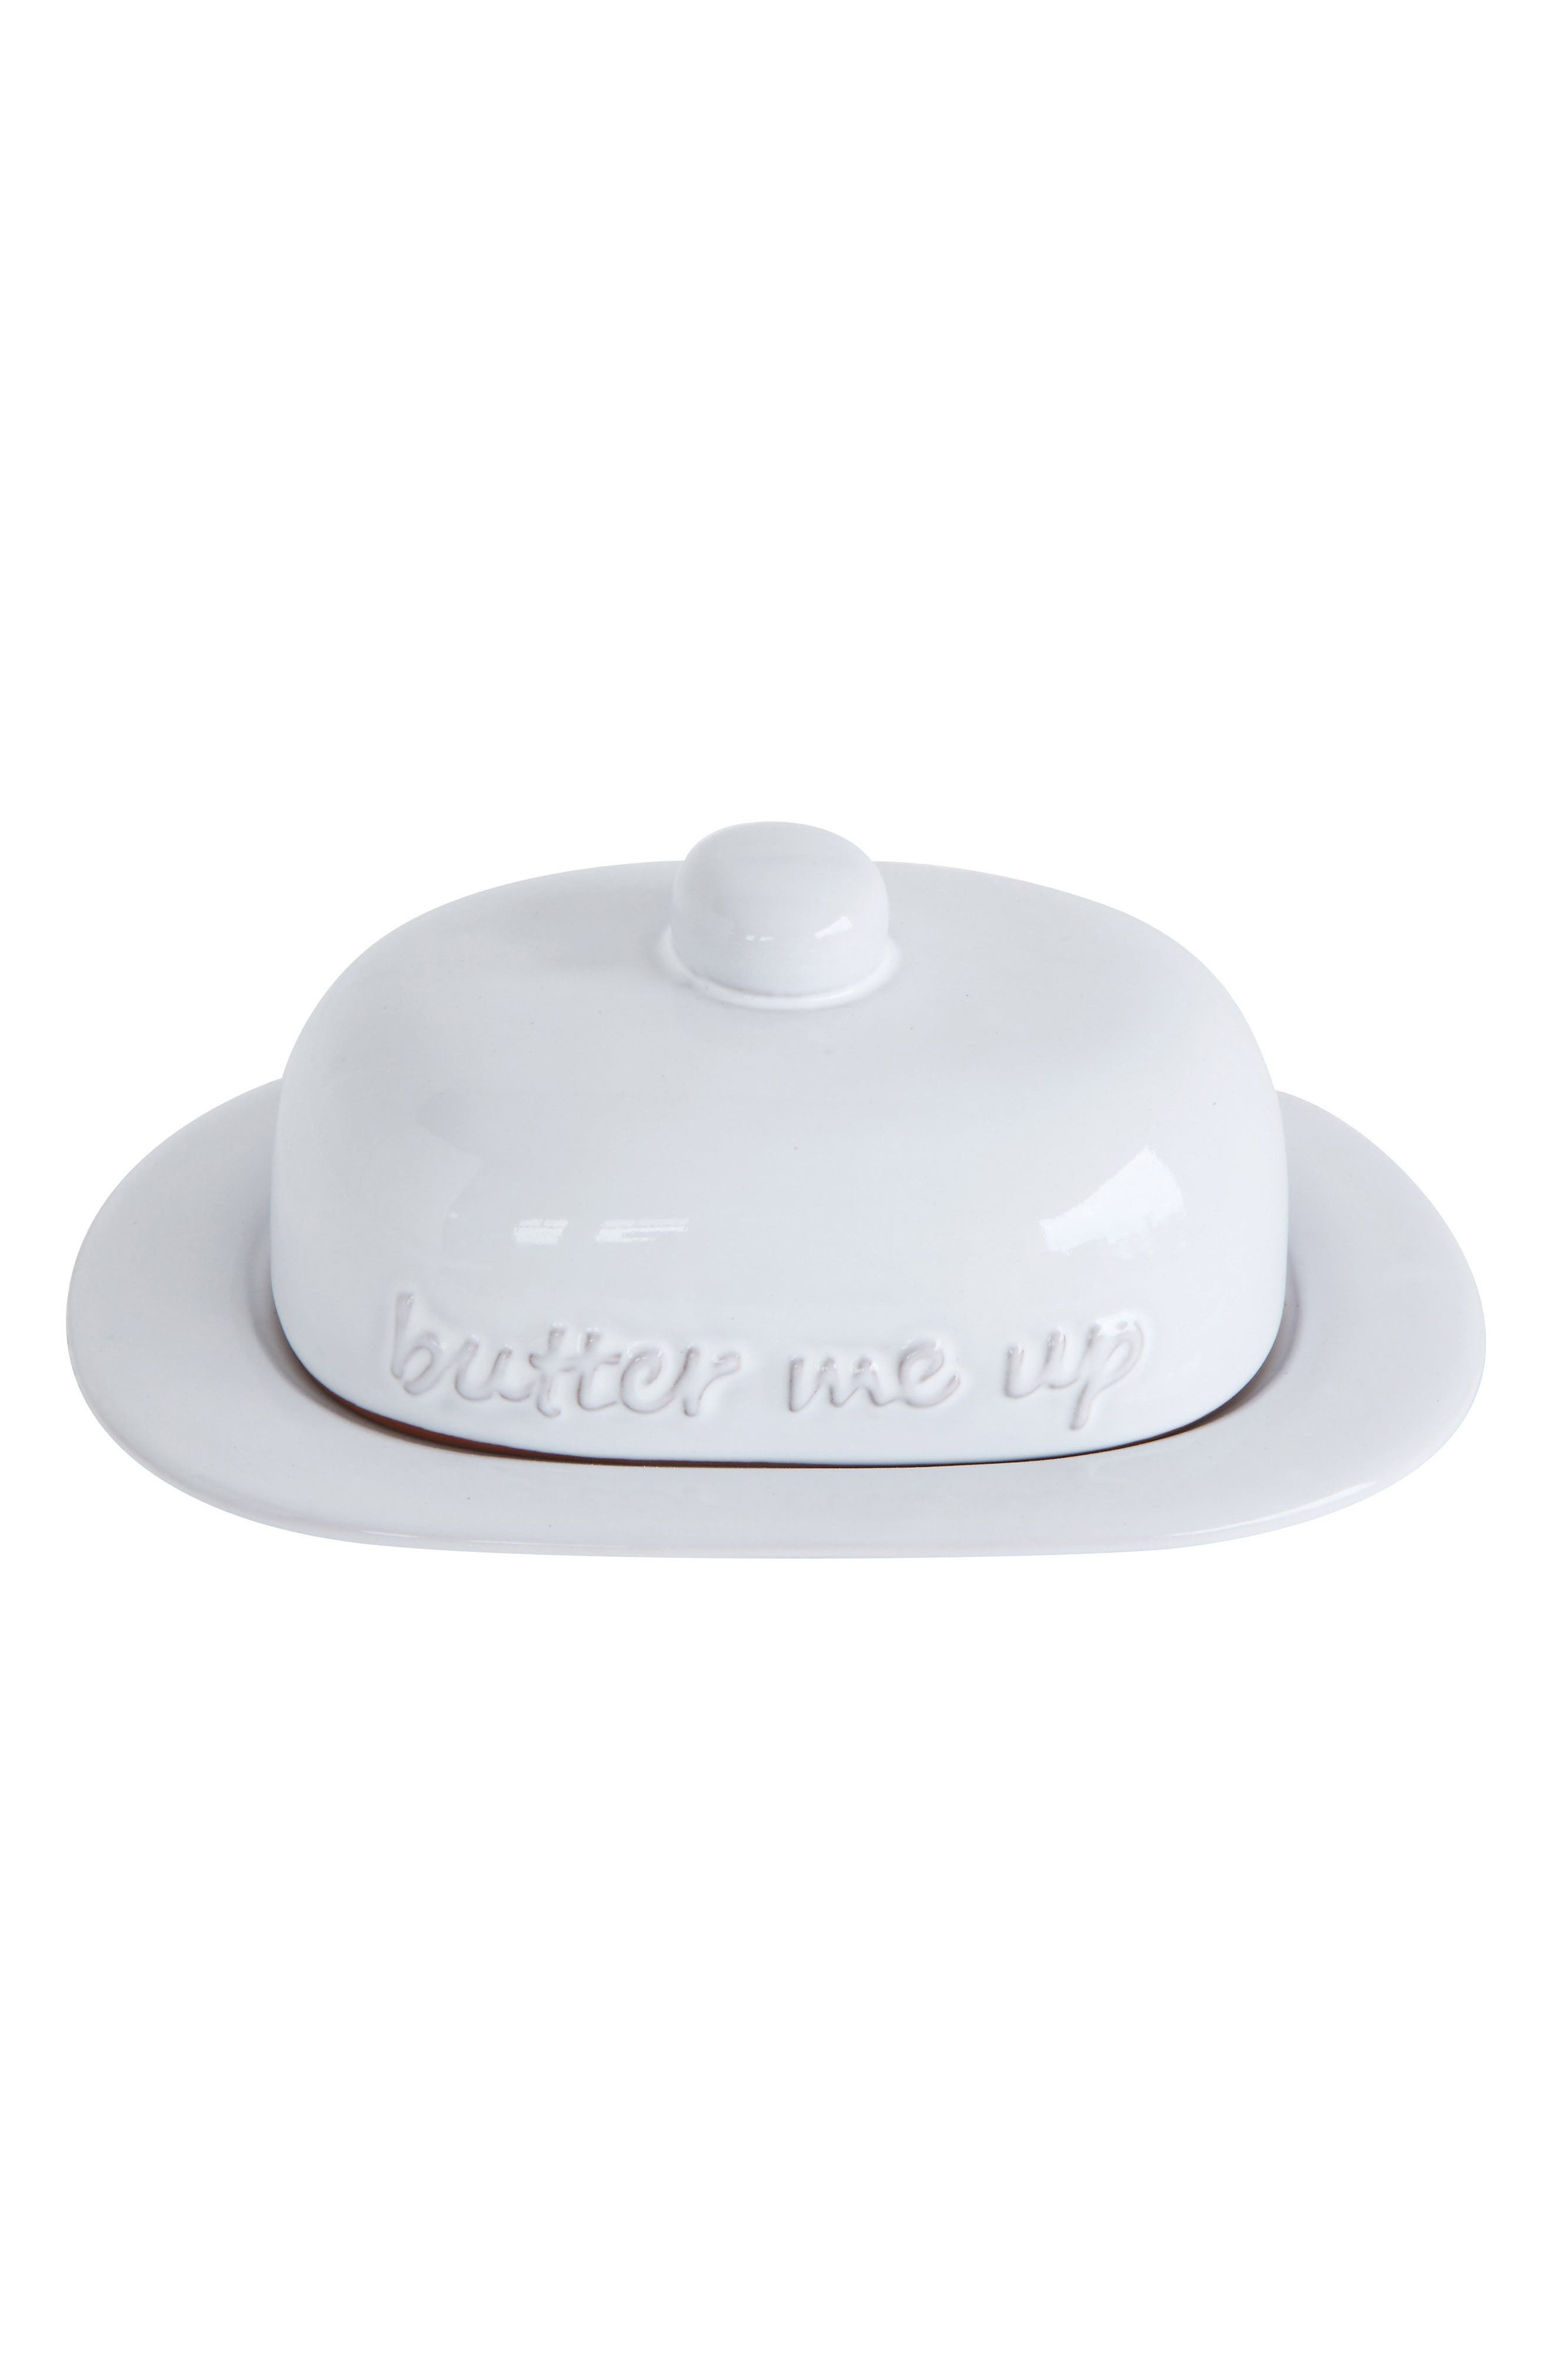 Butter Me Up Ceramic Butter Dish,                         Main,                         color, White